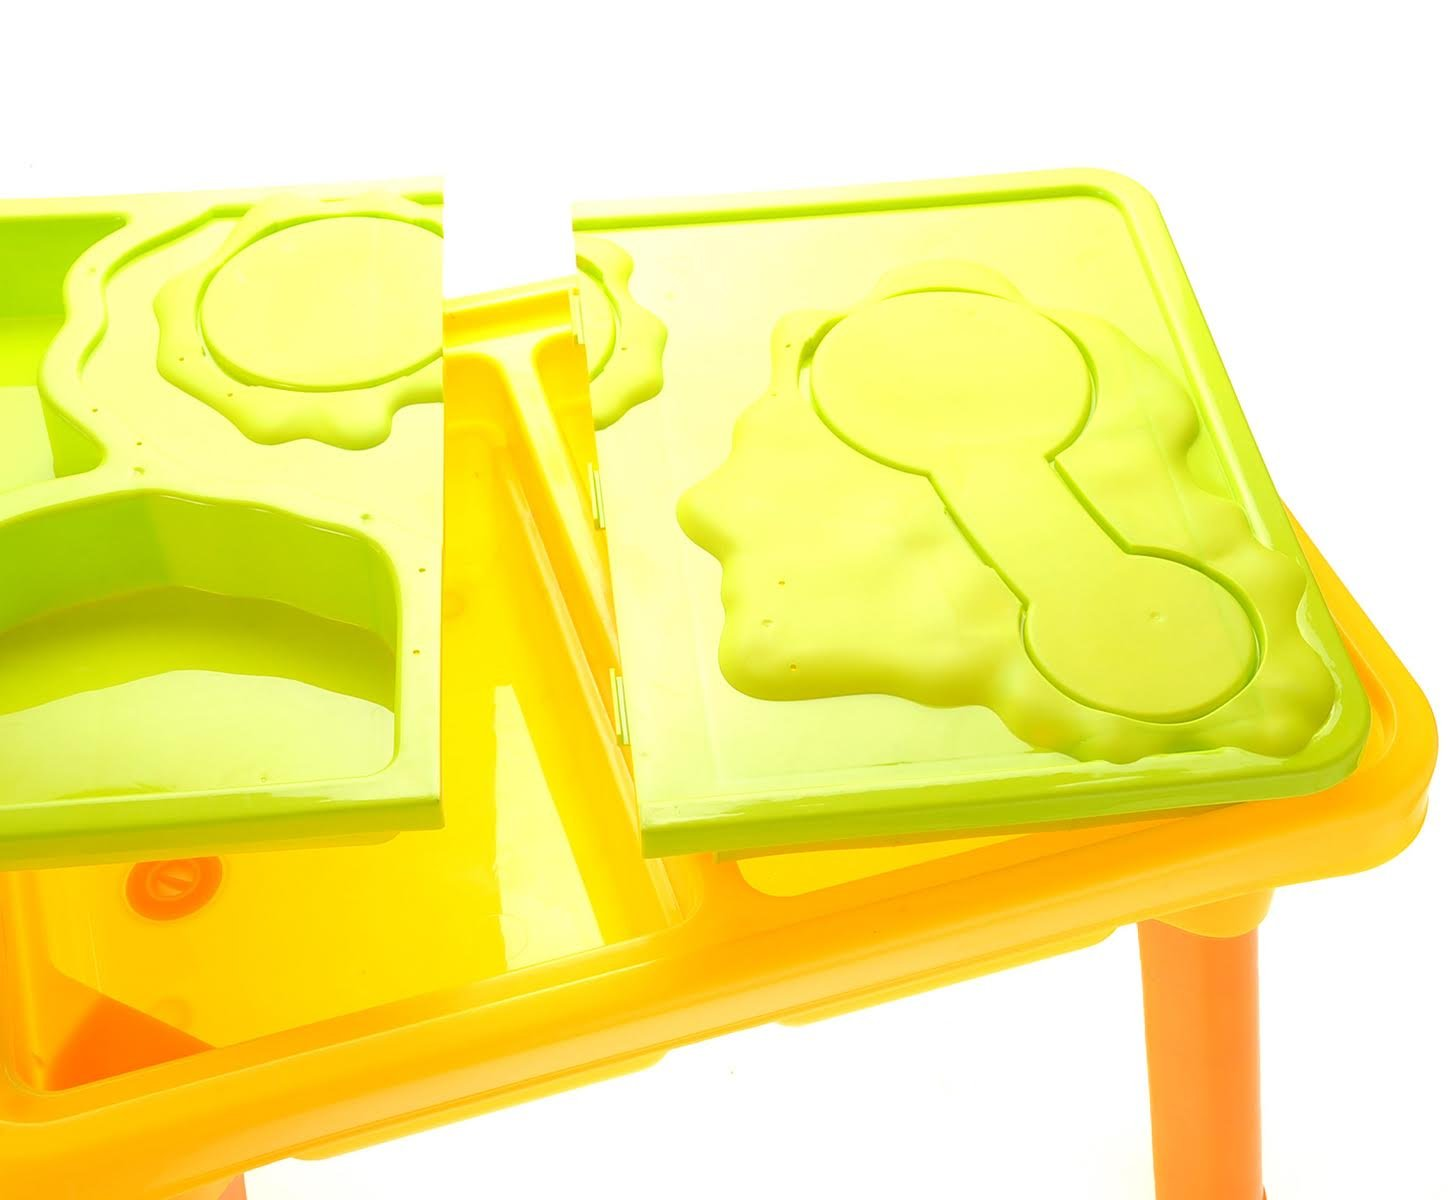 CHIMAERA Multi-Play 2-in-1 Sandbox / Sand and Water Table with Beach Playset by CHIMAERA (Image #1)